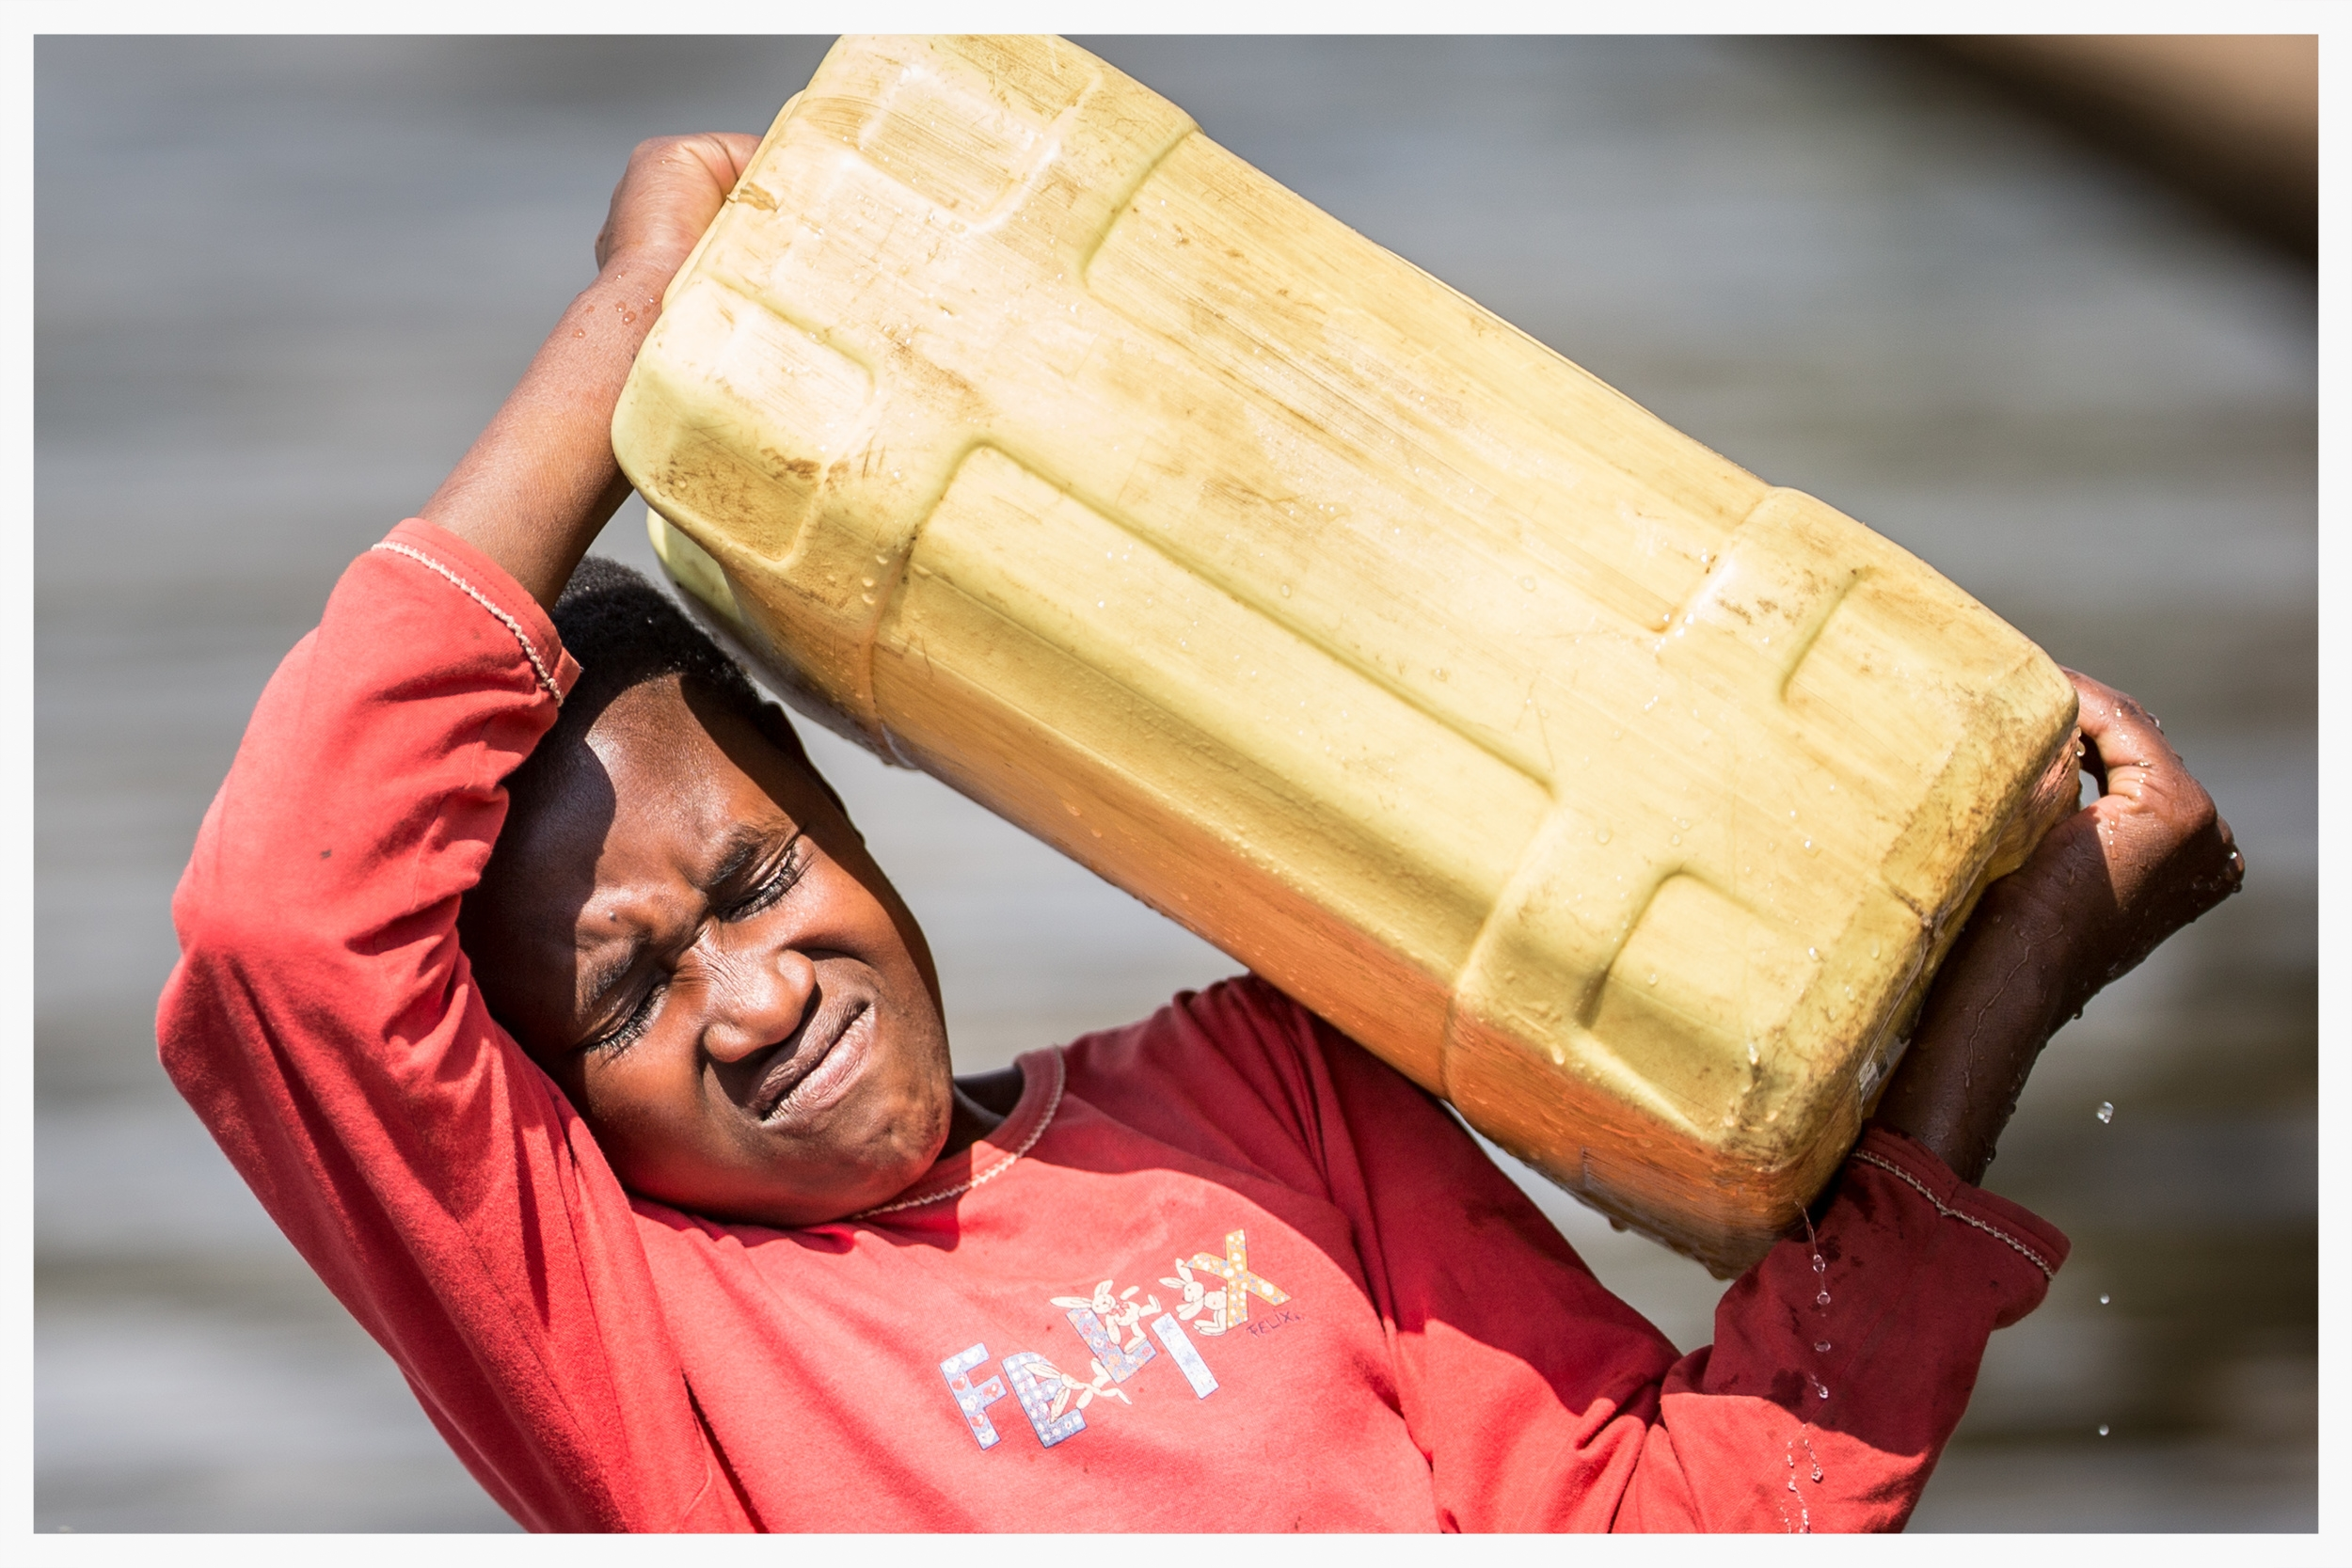 Lifting 20 litres of water (20kg) is tough for an 11-year-old girl. Photo © Marcus Perkins